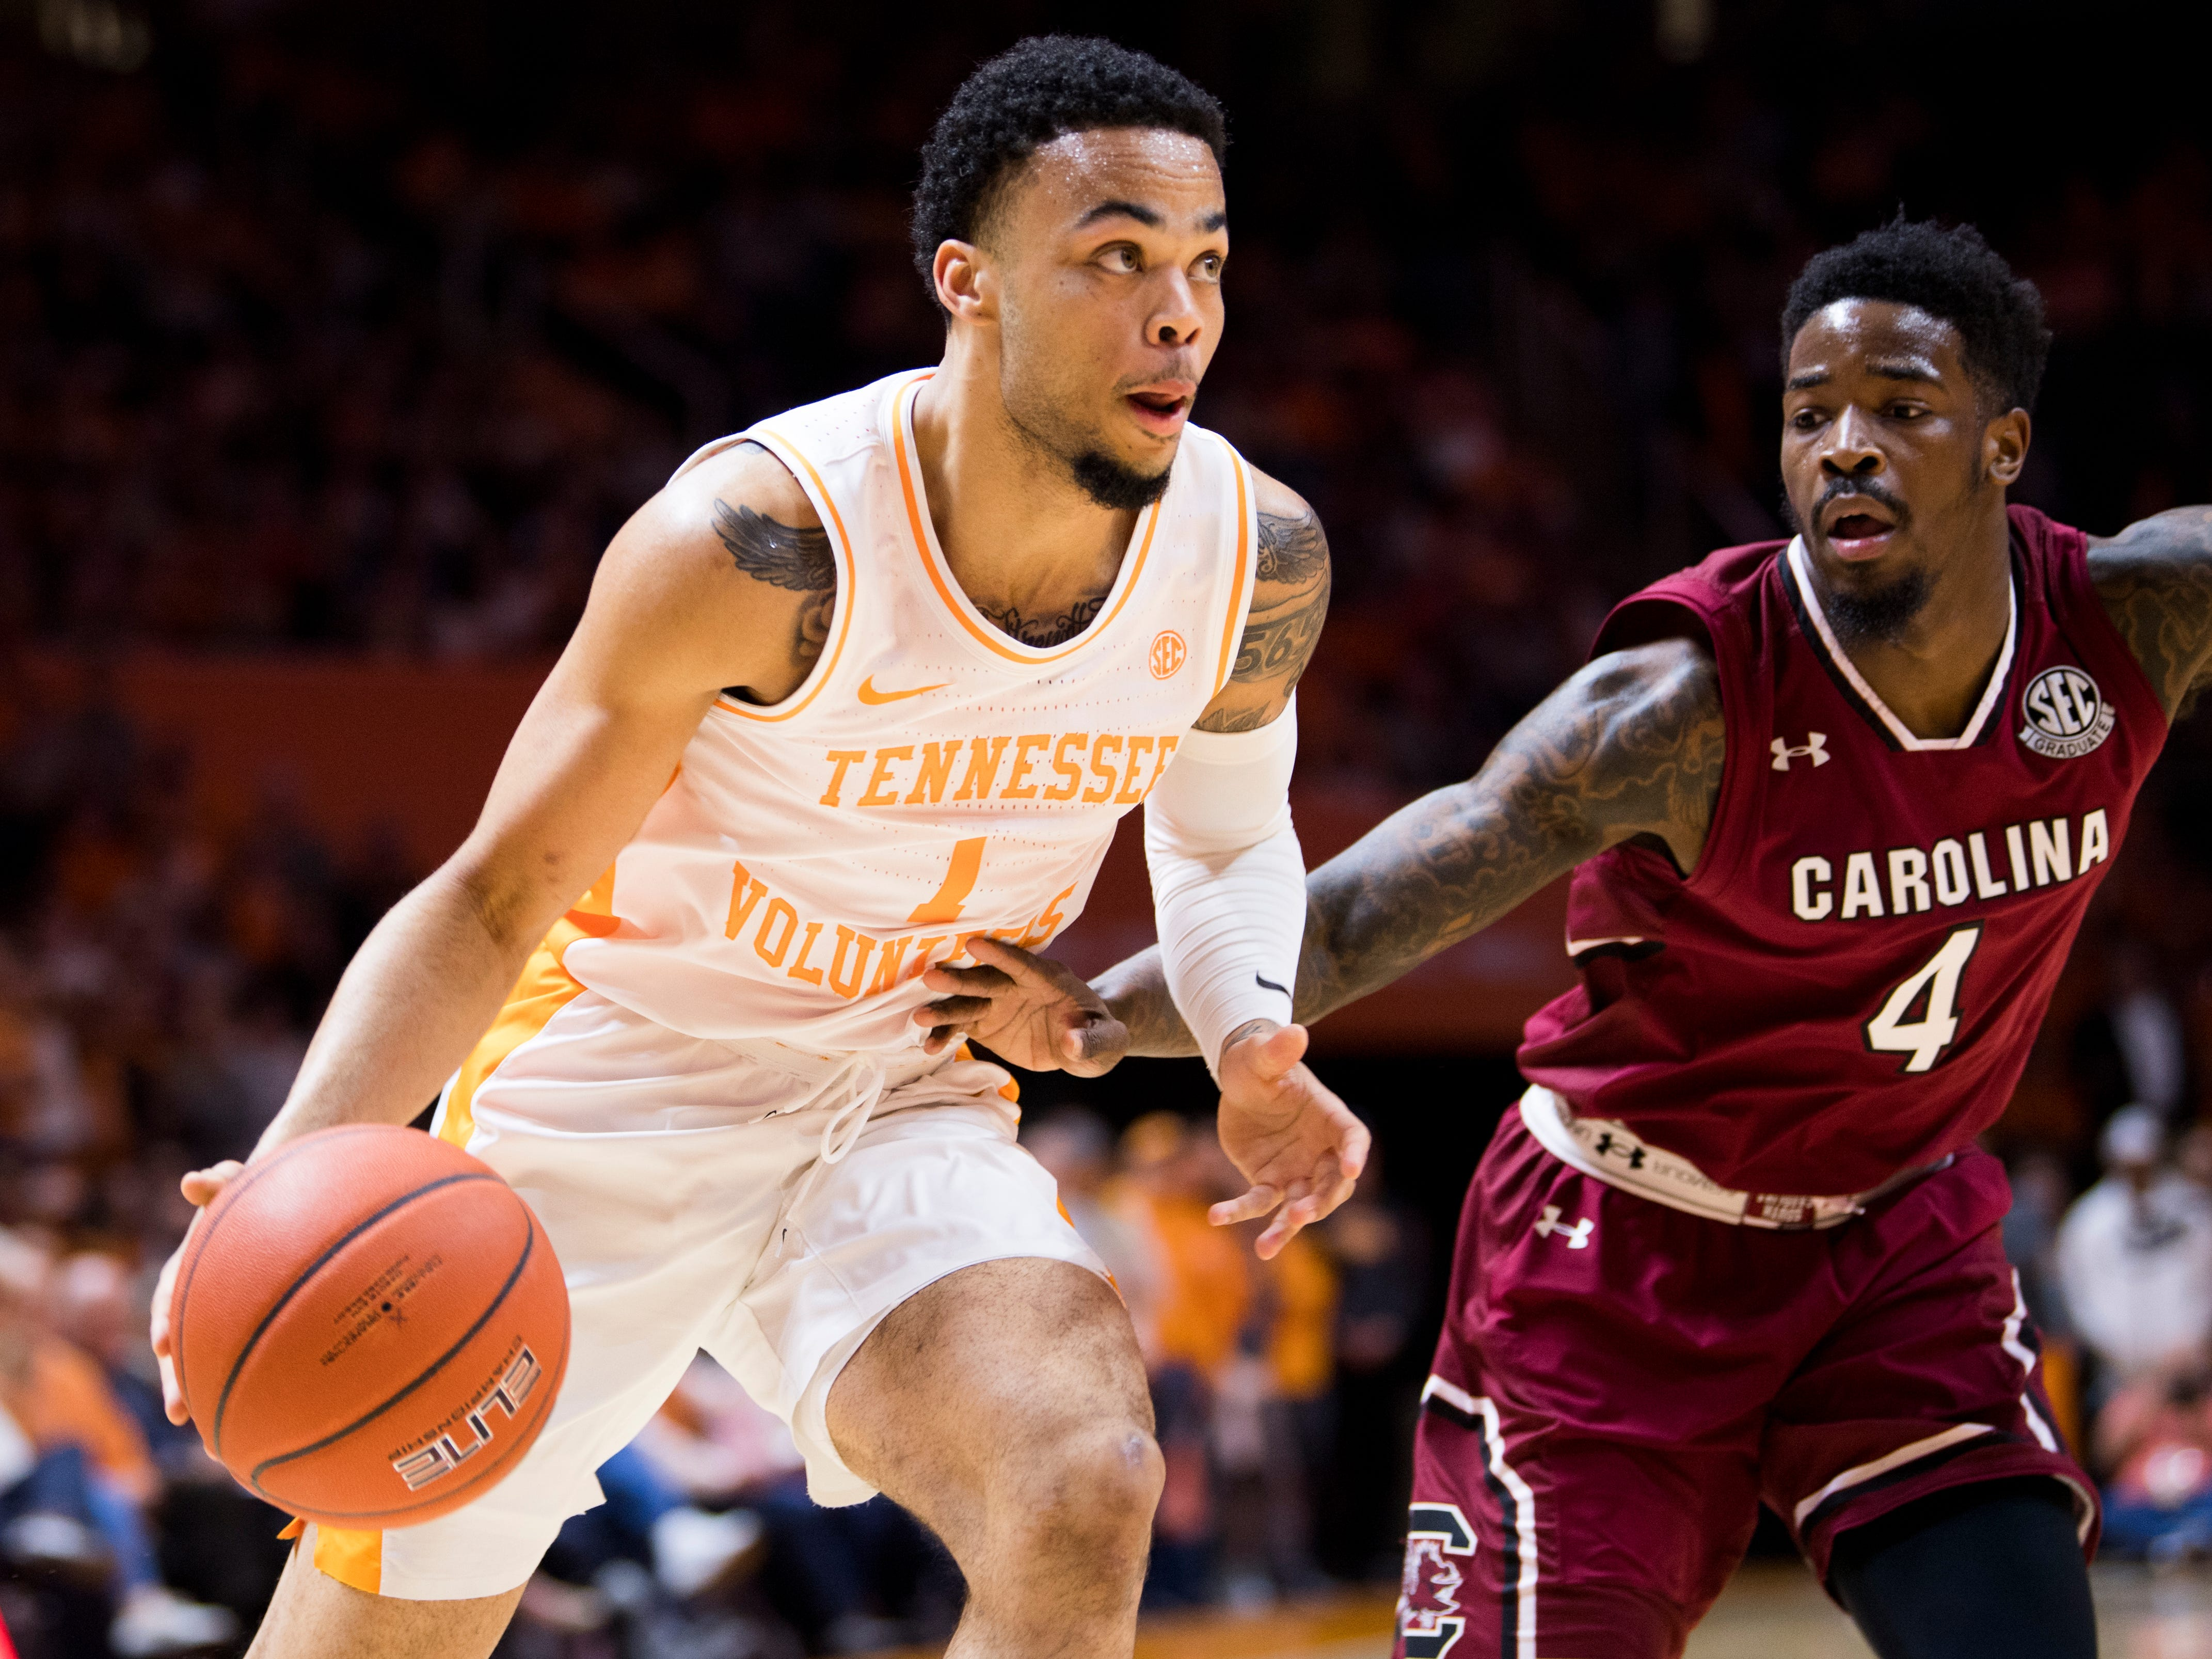 Tennessee guard Lamonte Turner (1) drives past South Carolina guard Tre Campbell (4) during Tennessee's home SEC game against South Carolina at Thompson-Boling Arena in Knoxville on Wednesday, February 13, 2019.